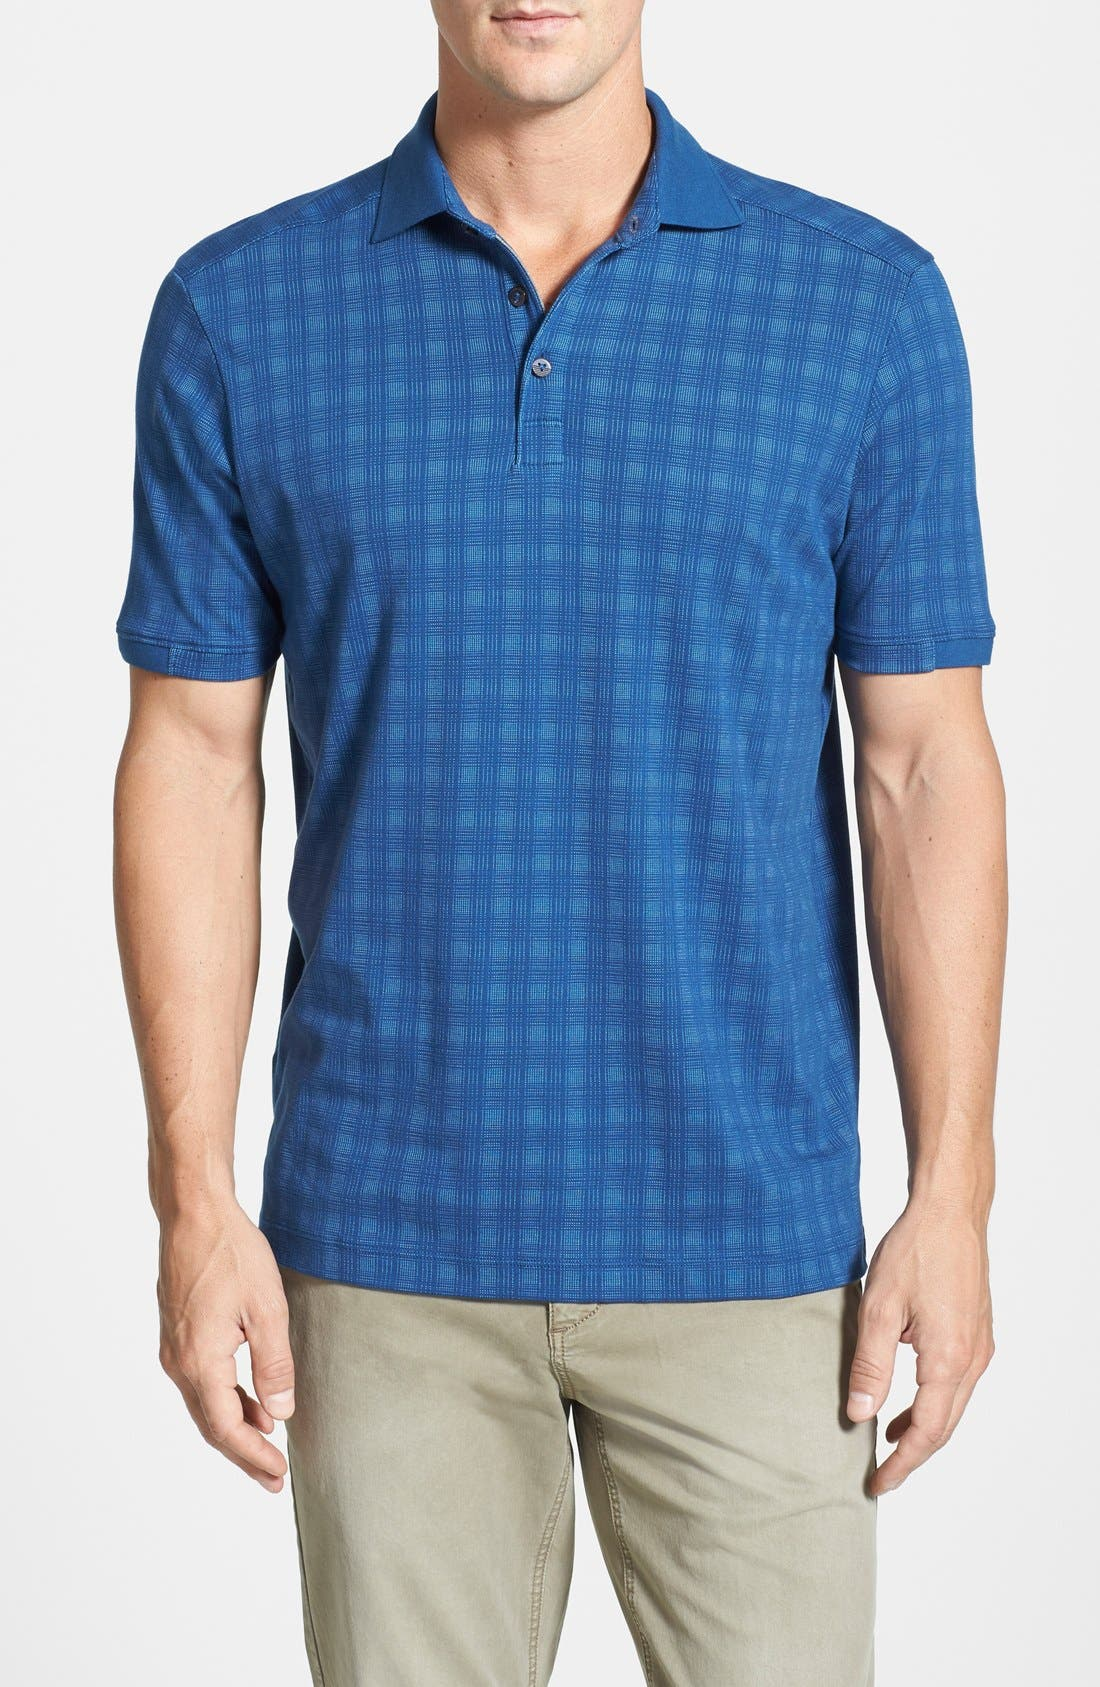 Alternate Image 1 Selected - Tommy Bahama 'Double Take' Cotton Blend Polo